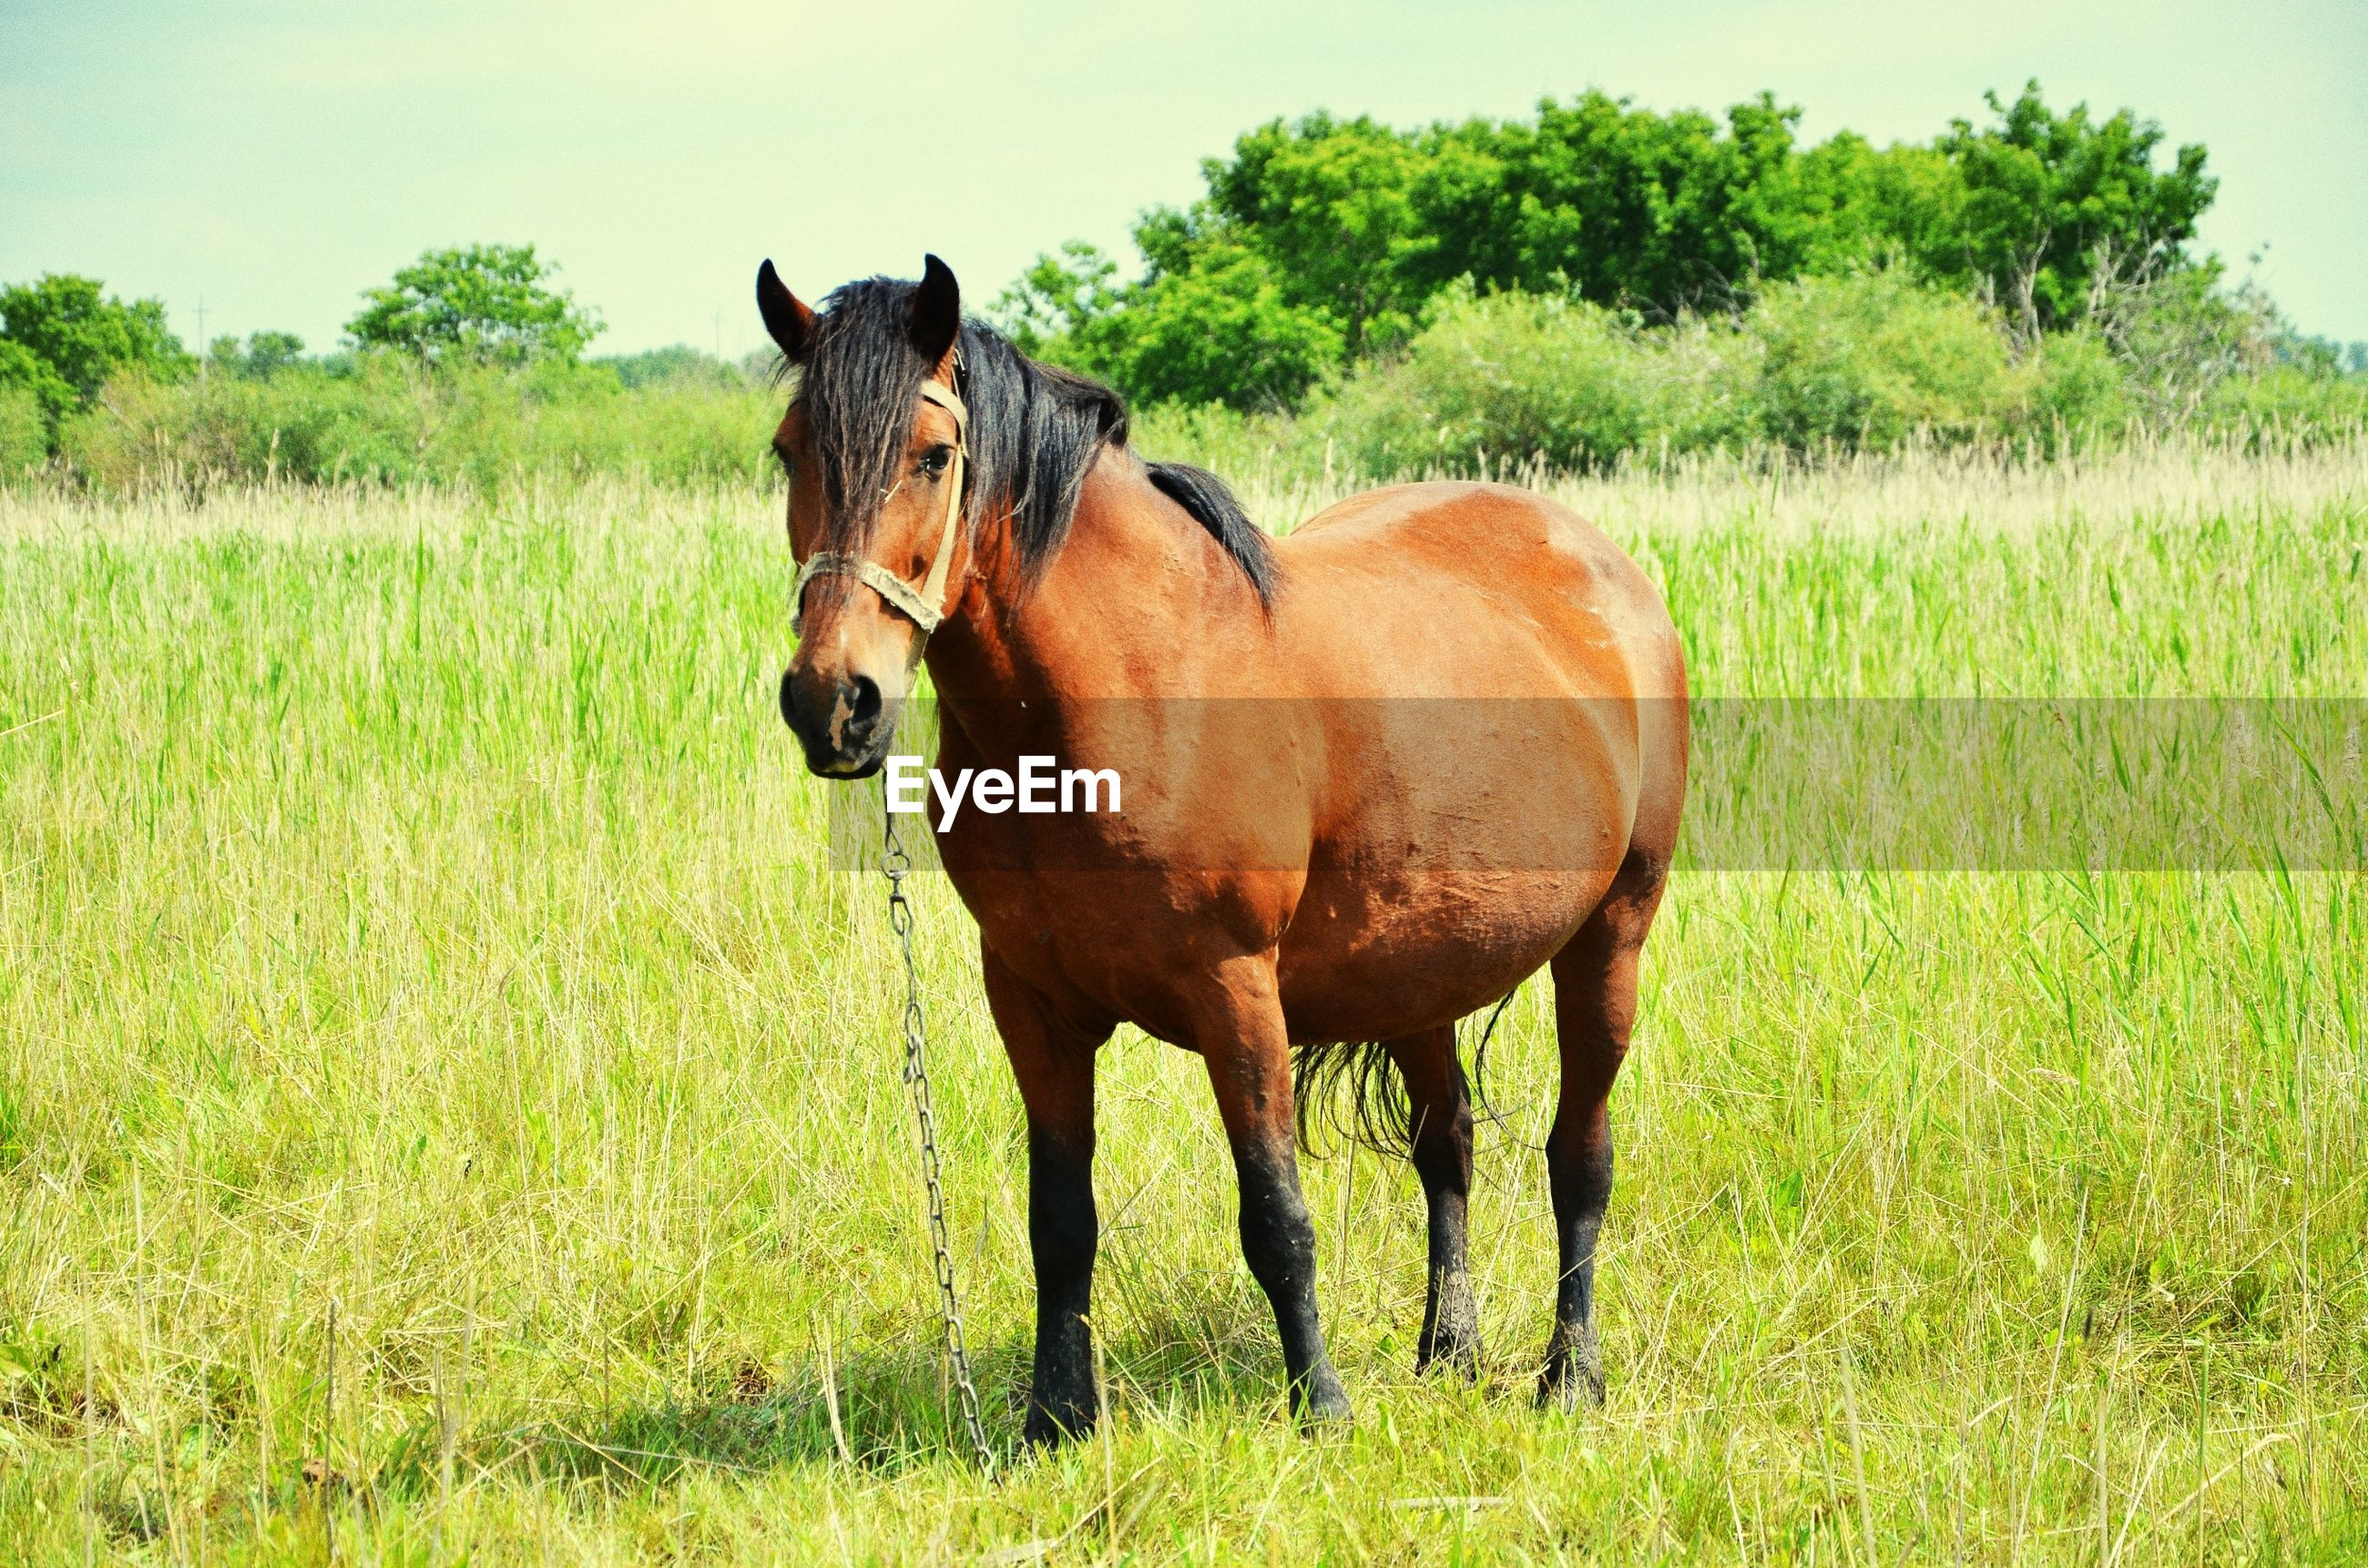 animal themes, mammal, domestic animals, grass, field, one animal, standing, grassy, livestock, horse, landscape, full length, green color, herbivorous, nature, grazing, side view, tree, brown, no people